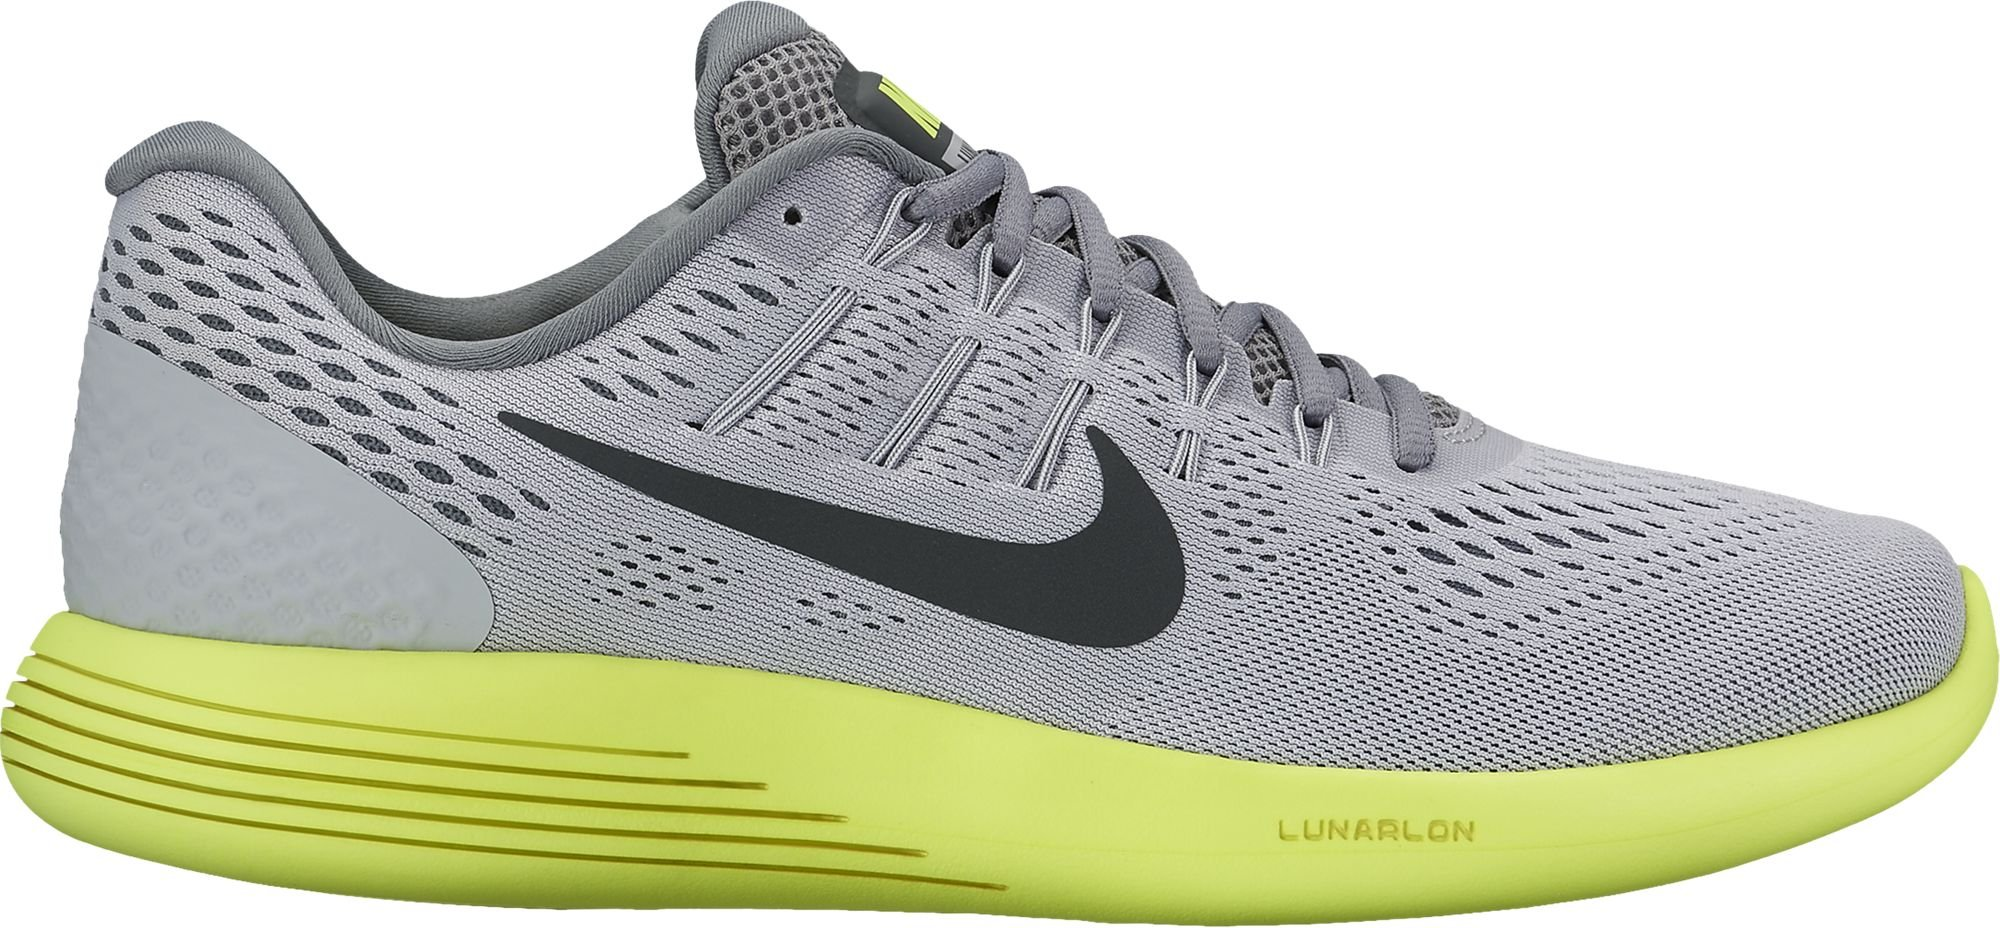 new product 8e725 9ce3f Galleon - Nike Mens LunarGlide 8 Running Shoe Wolf  Grey Anthracite Volt Cool Grey Size 9 M US